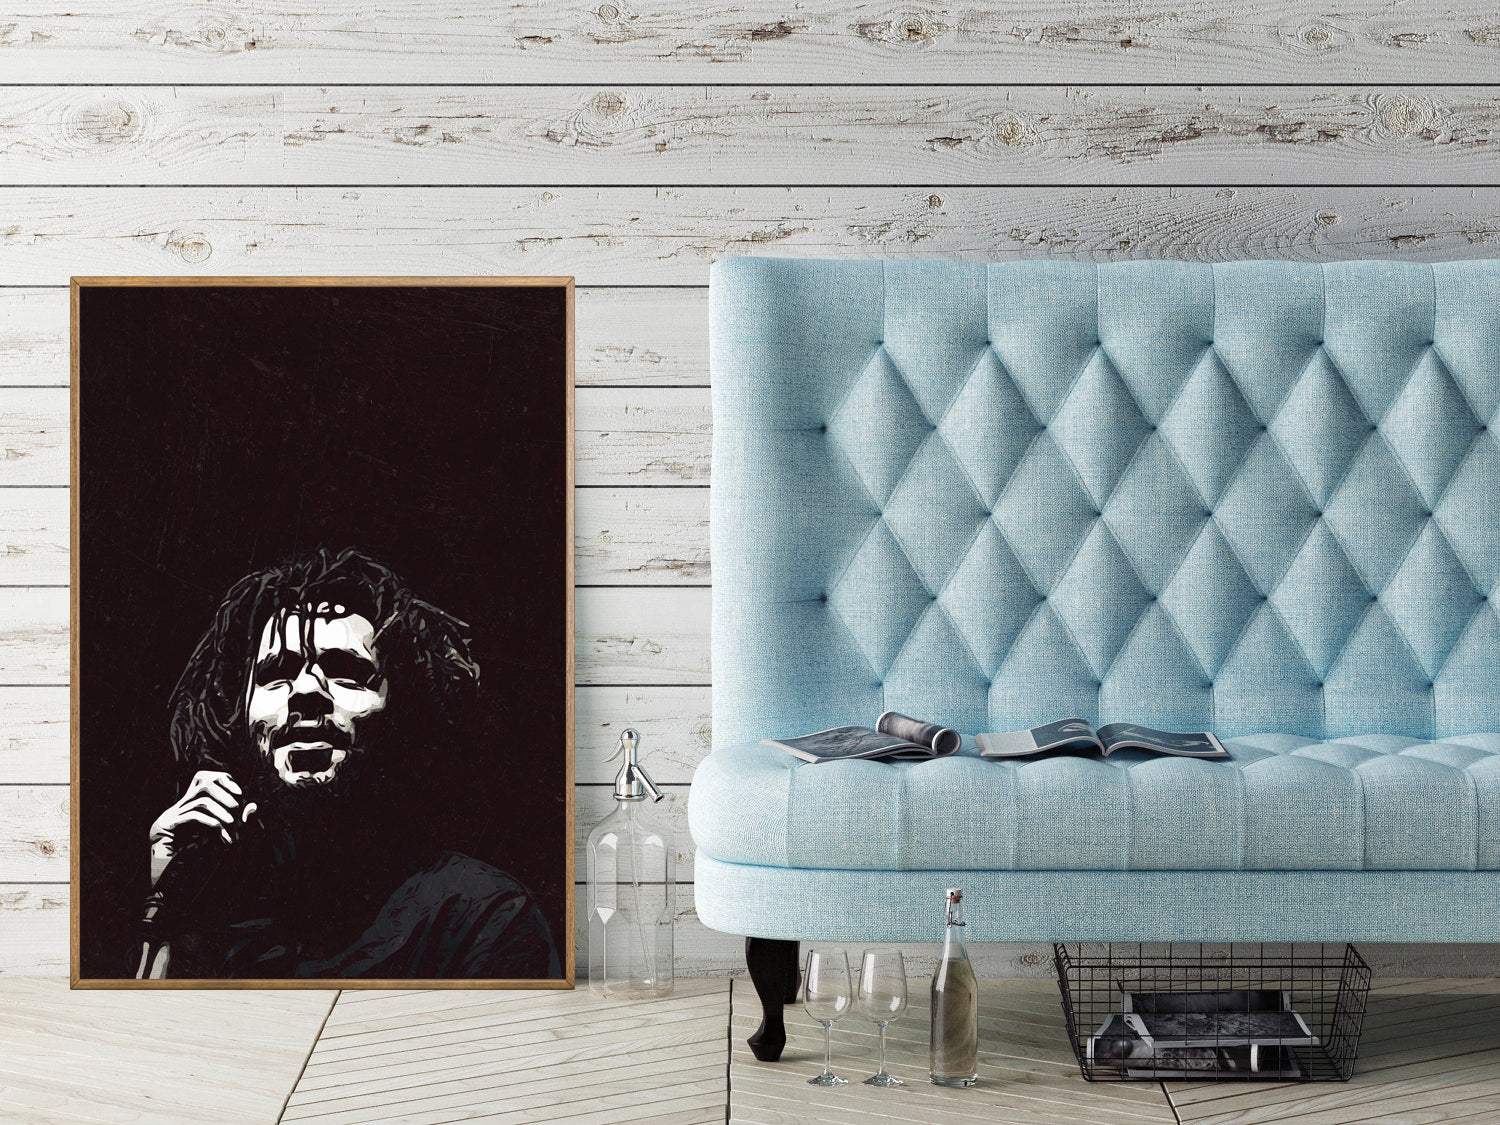 J.Cole Poster,J.Cole Print,J.Cole Home Decor,J.Cole Giclee Print,Music Poster,Instant Download,J.Cole Portrait,J.Cole Black and White Art